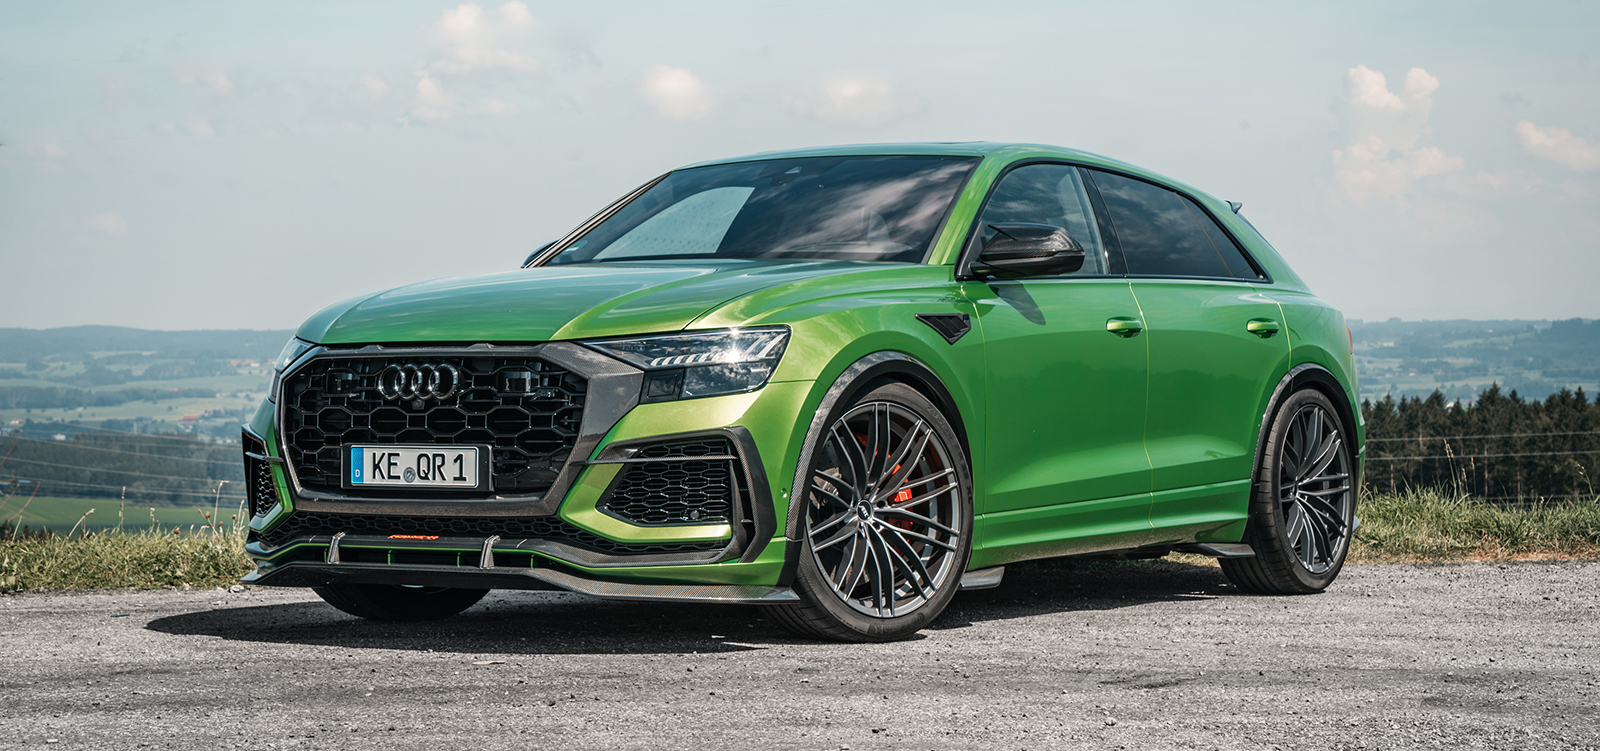 ABT_RSQ8-R_green_HR23_landscape_front_diagonally